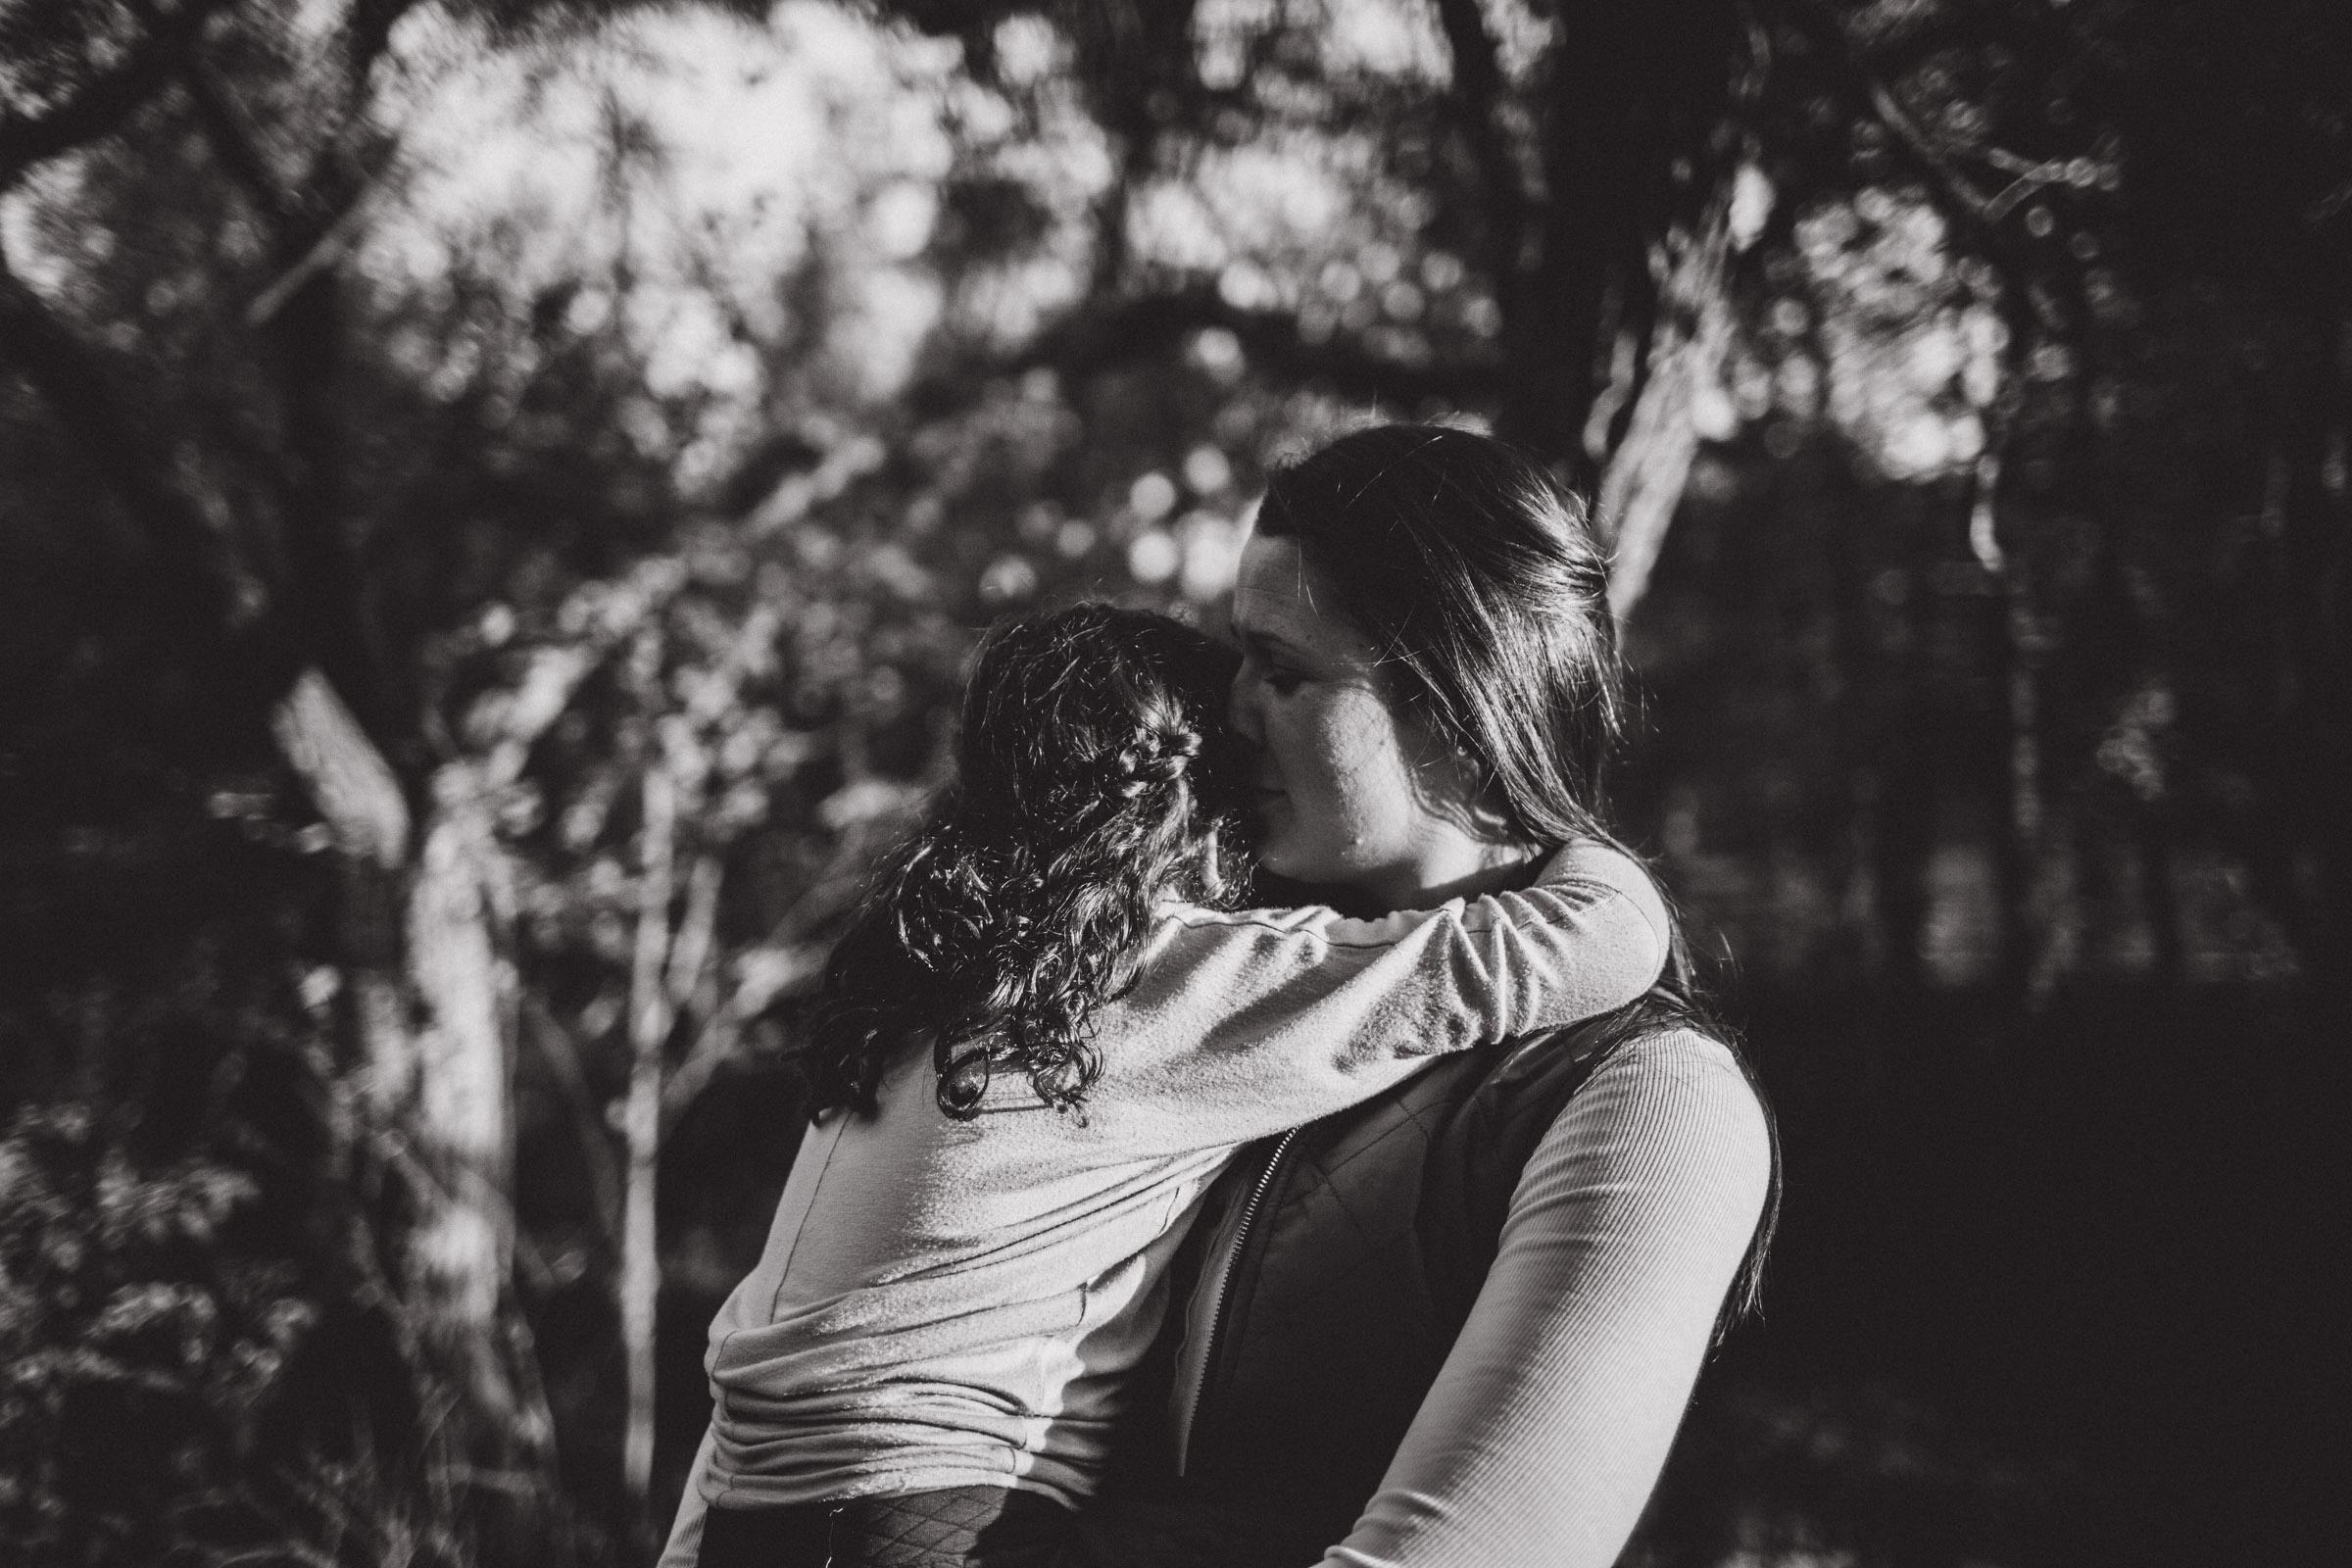 mother and daughter breathing each other in, black and white image